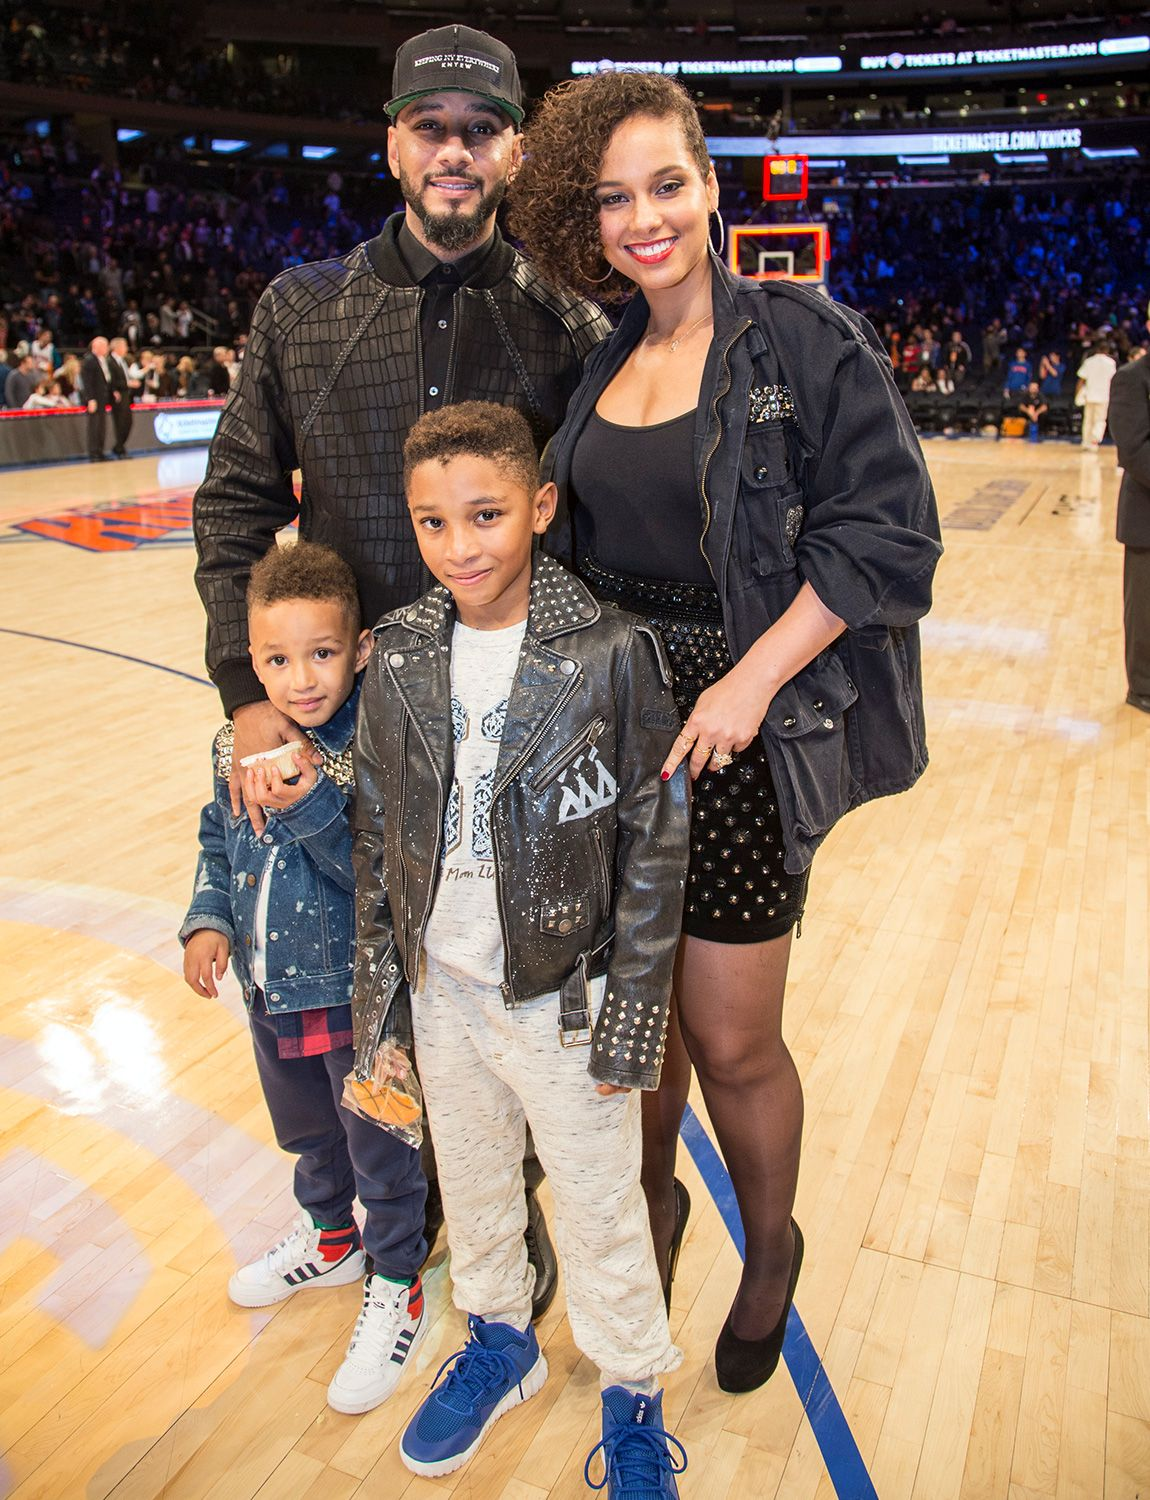 Alicia Keys Reveals Her Lifelong Struggle to Find Herself in Emotional New Book   Alicia keys swizz beatz, Alicia keys, Alicia keys family